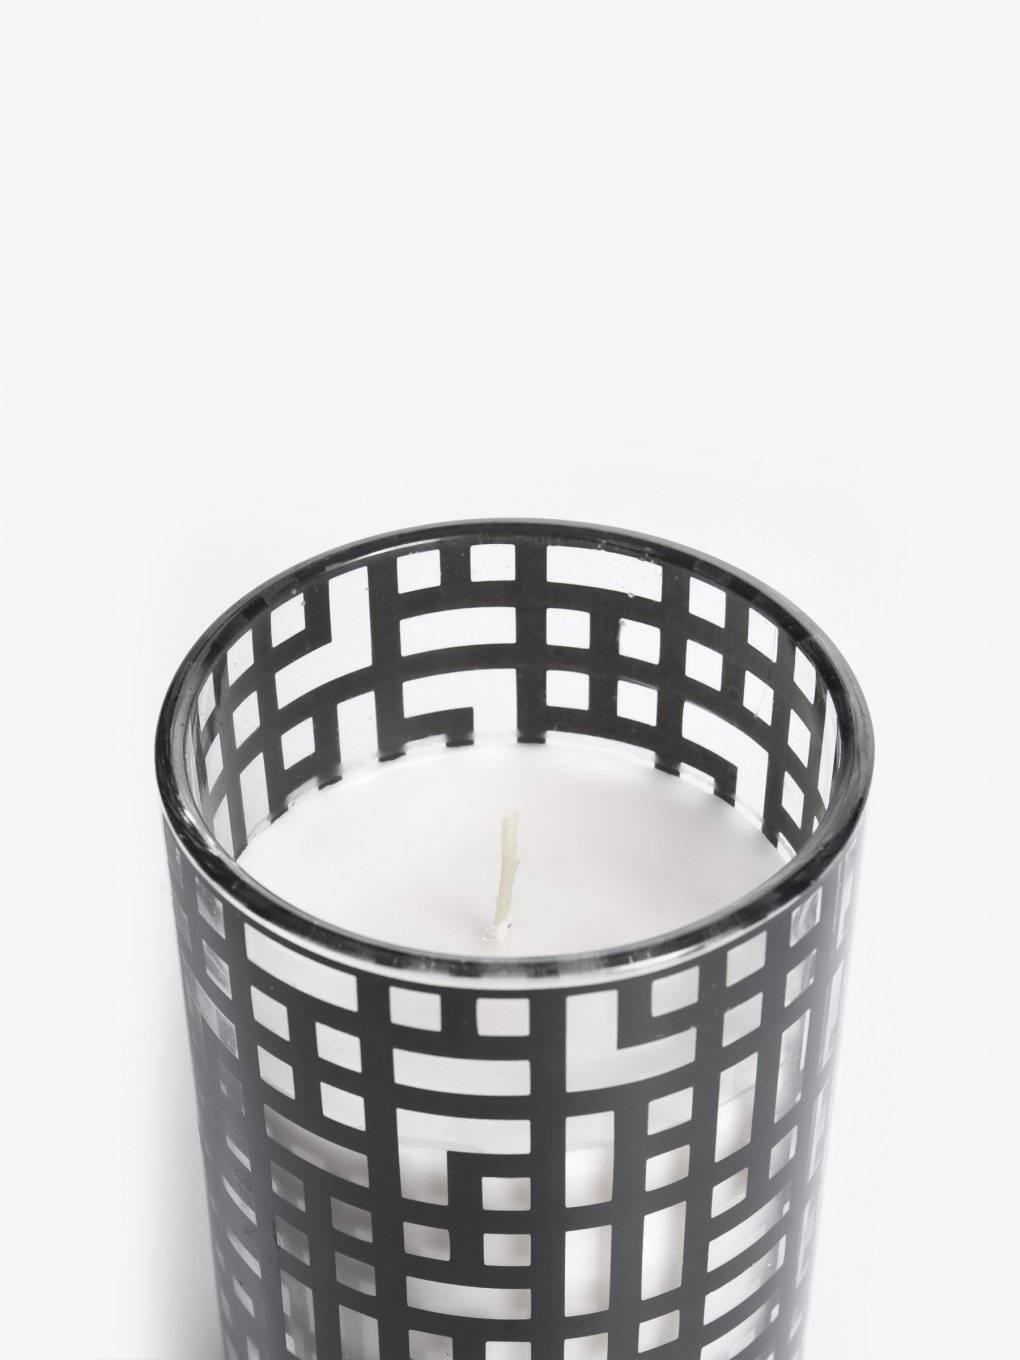 Paris armour scented candle